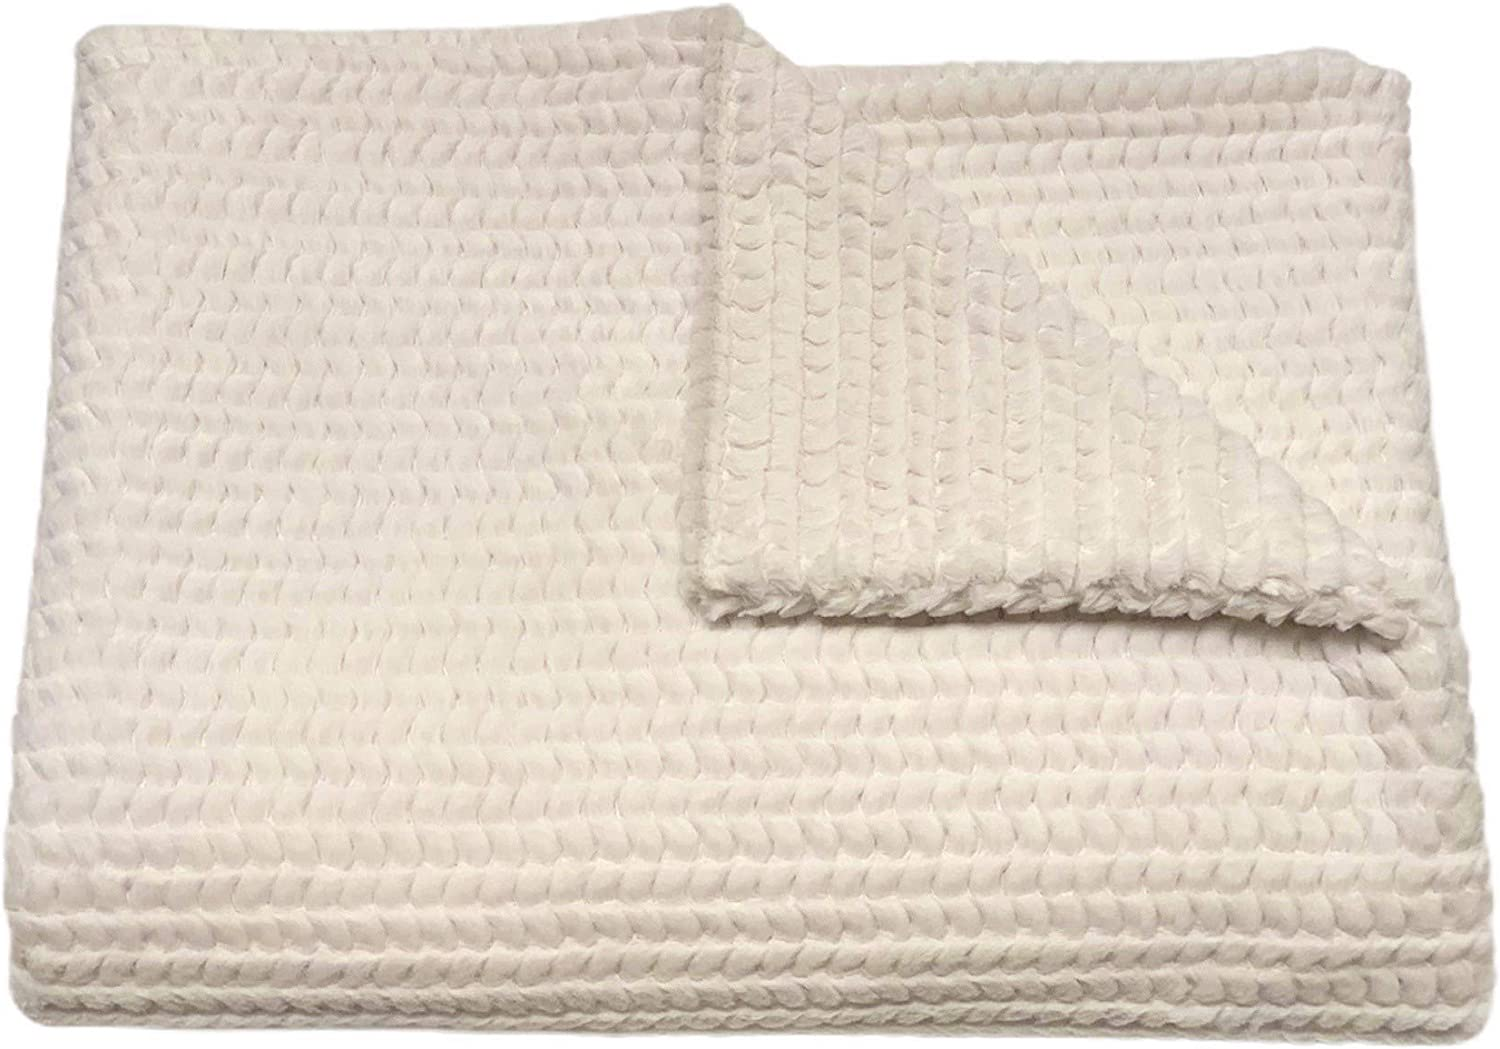 Tourance- Brooklyn Max 56% OFF Throw 45x60 Very popular – Ivory